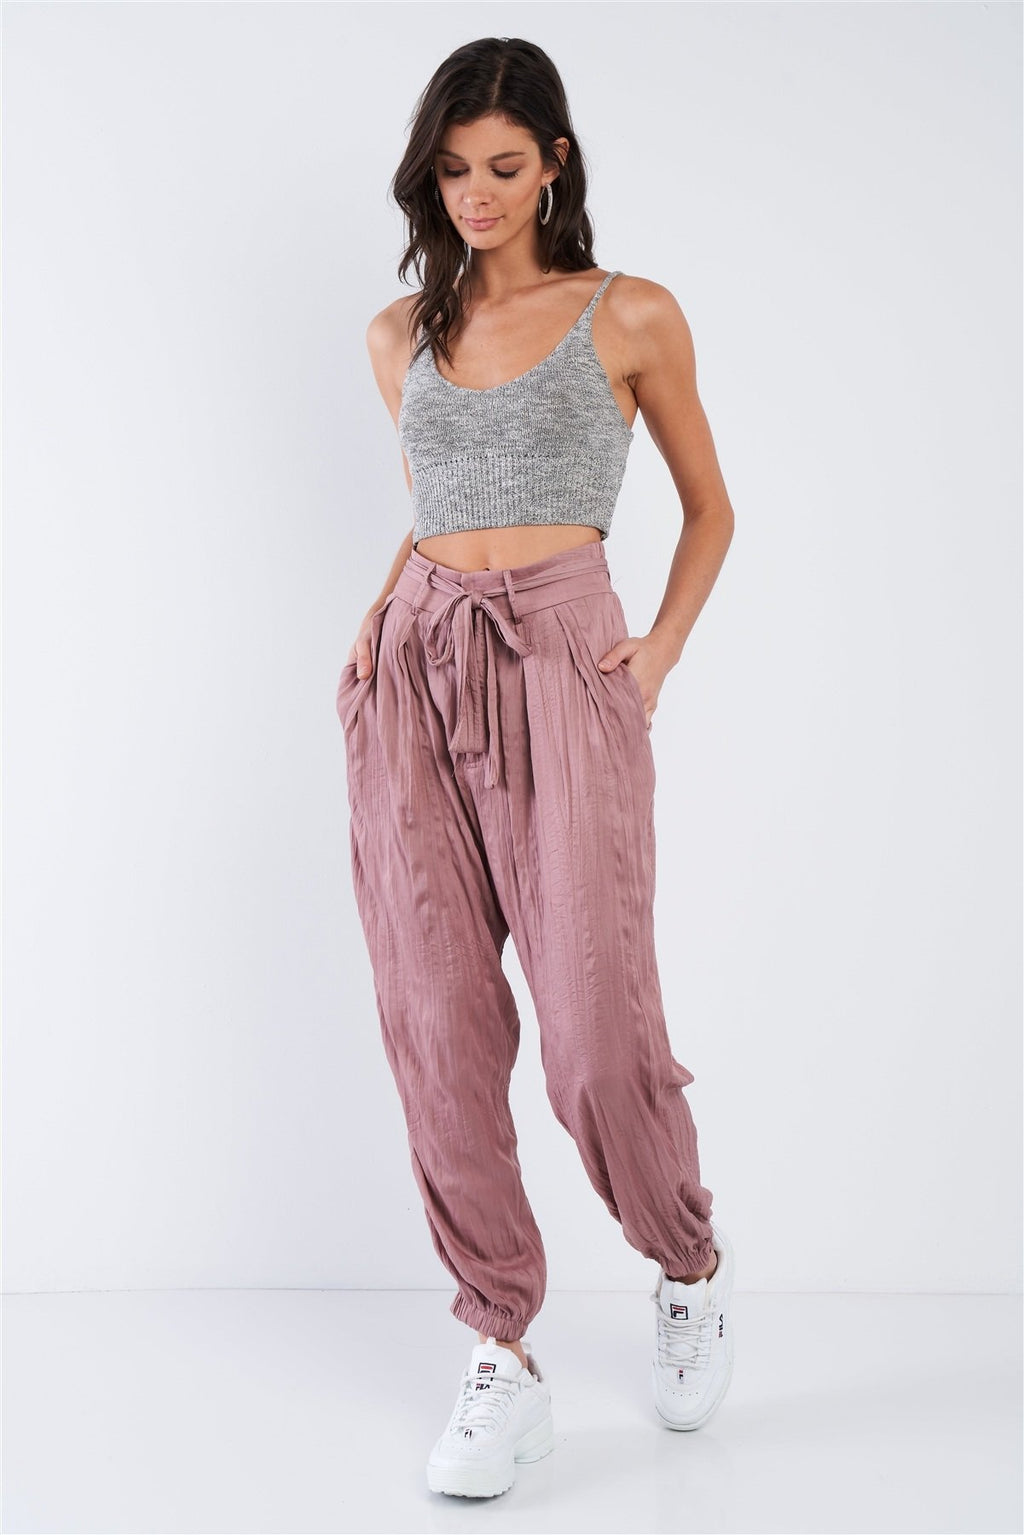 S Satin Cinched Ankle Cuff Sash Pants